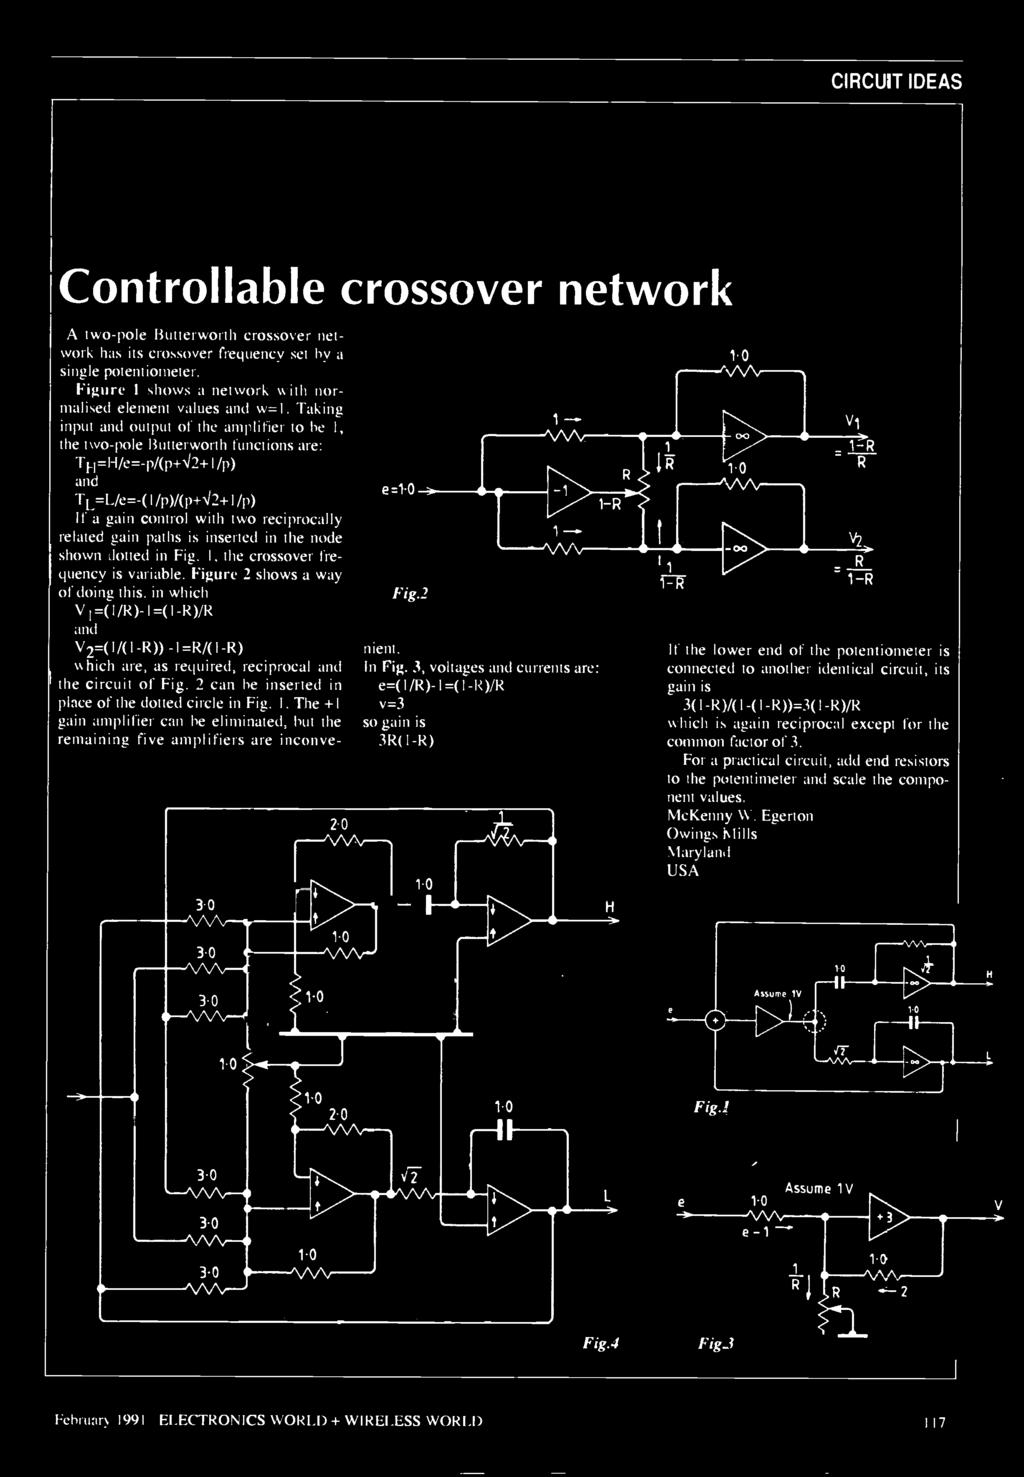 The Faces Of Un Wireless World Filters Architecture Programmed Stripboard Relay Shield Circuit Diagram Click For A Bigger Image In Which V11 R 11